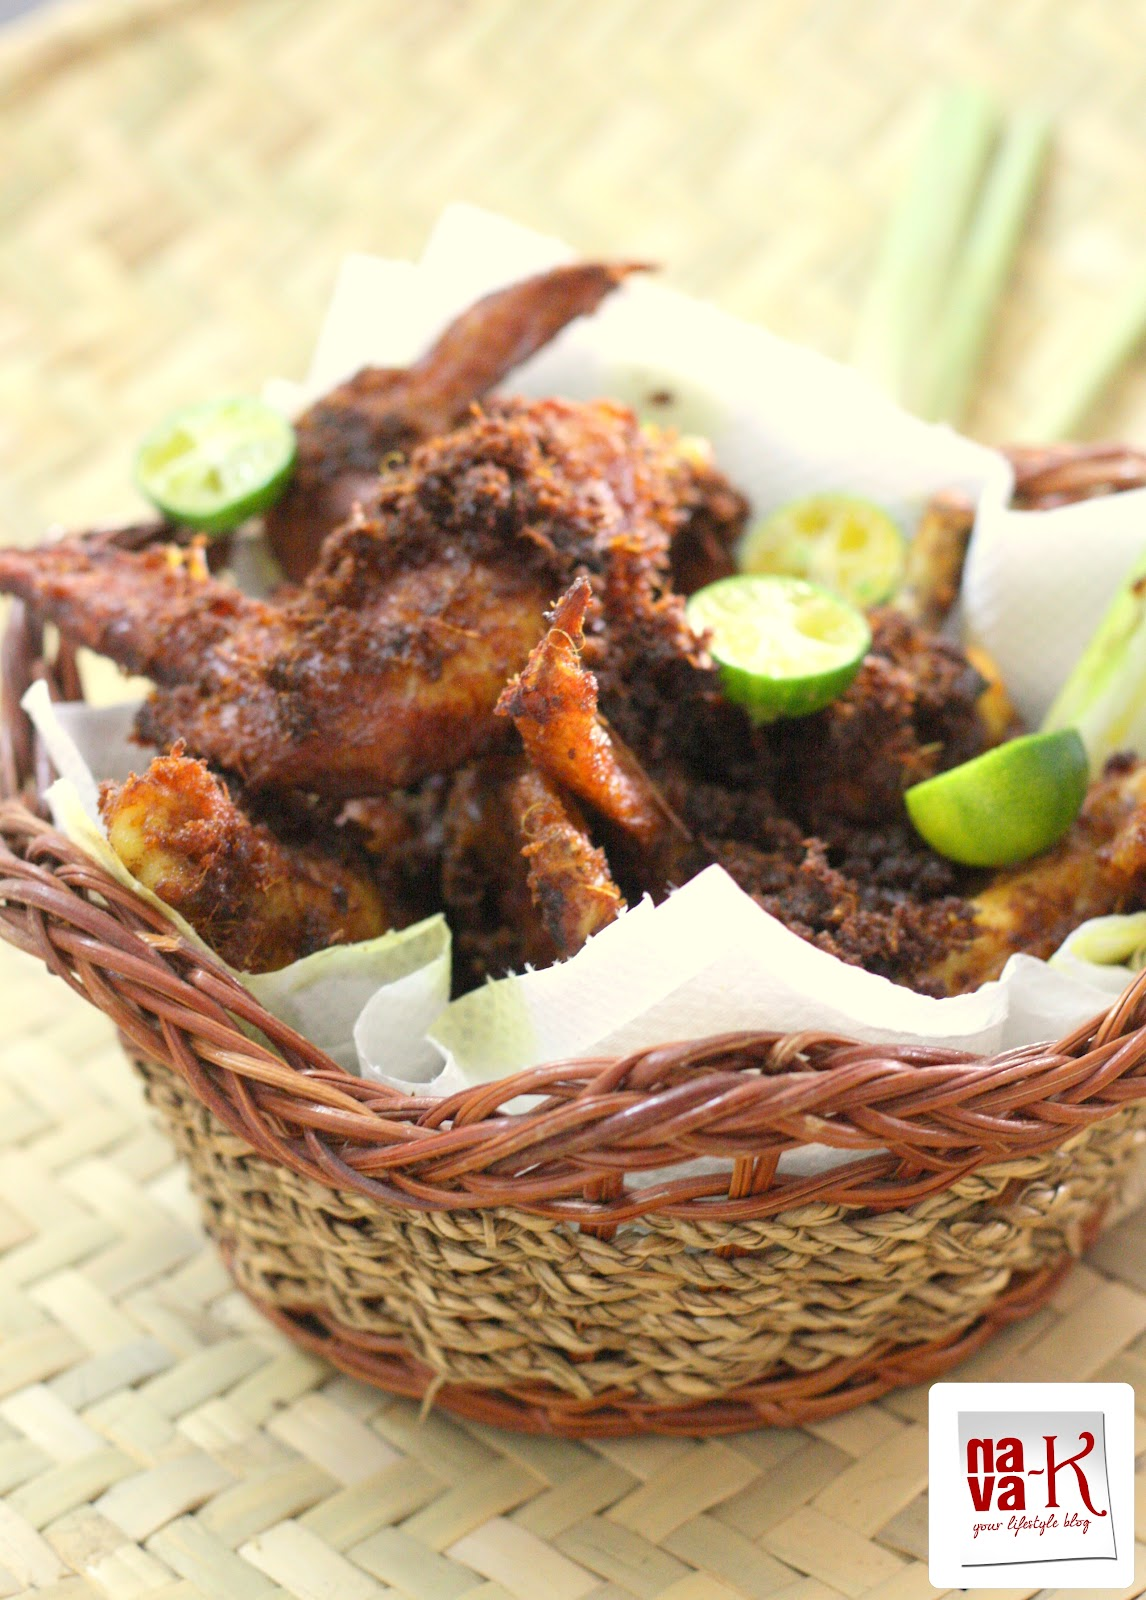 Nava k ayam goreng berempah spicy fried chicken forumfinder Images